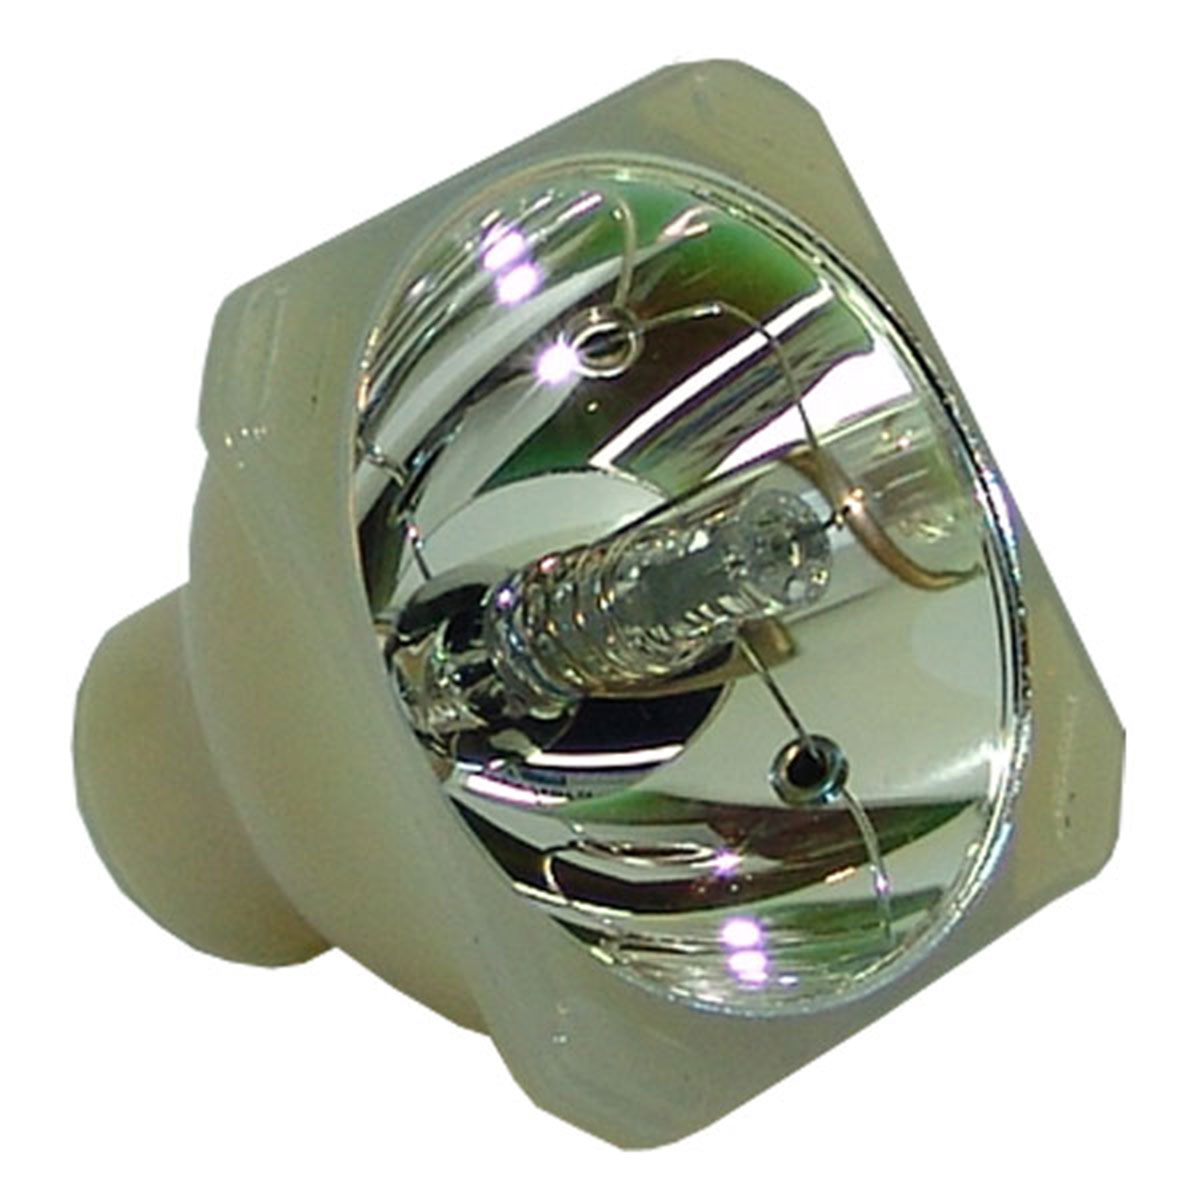 Compatible Bare Bulb DT01151 DT-01151 for Hitachi CP-RX79 CP-RX82 CP-RX93  ED-X26 Projector Lamp Bulb without housing dt01151 original bare lamp for hitachi cp rx79 cp rx82 cp rx93 ed x26 projectors